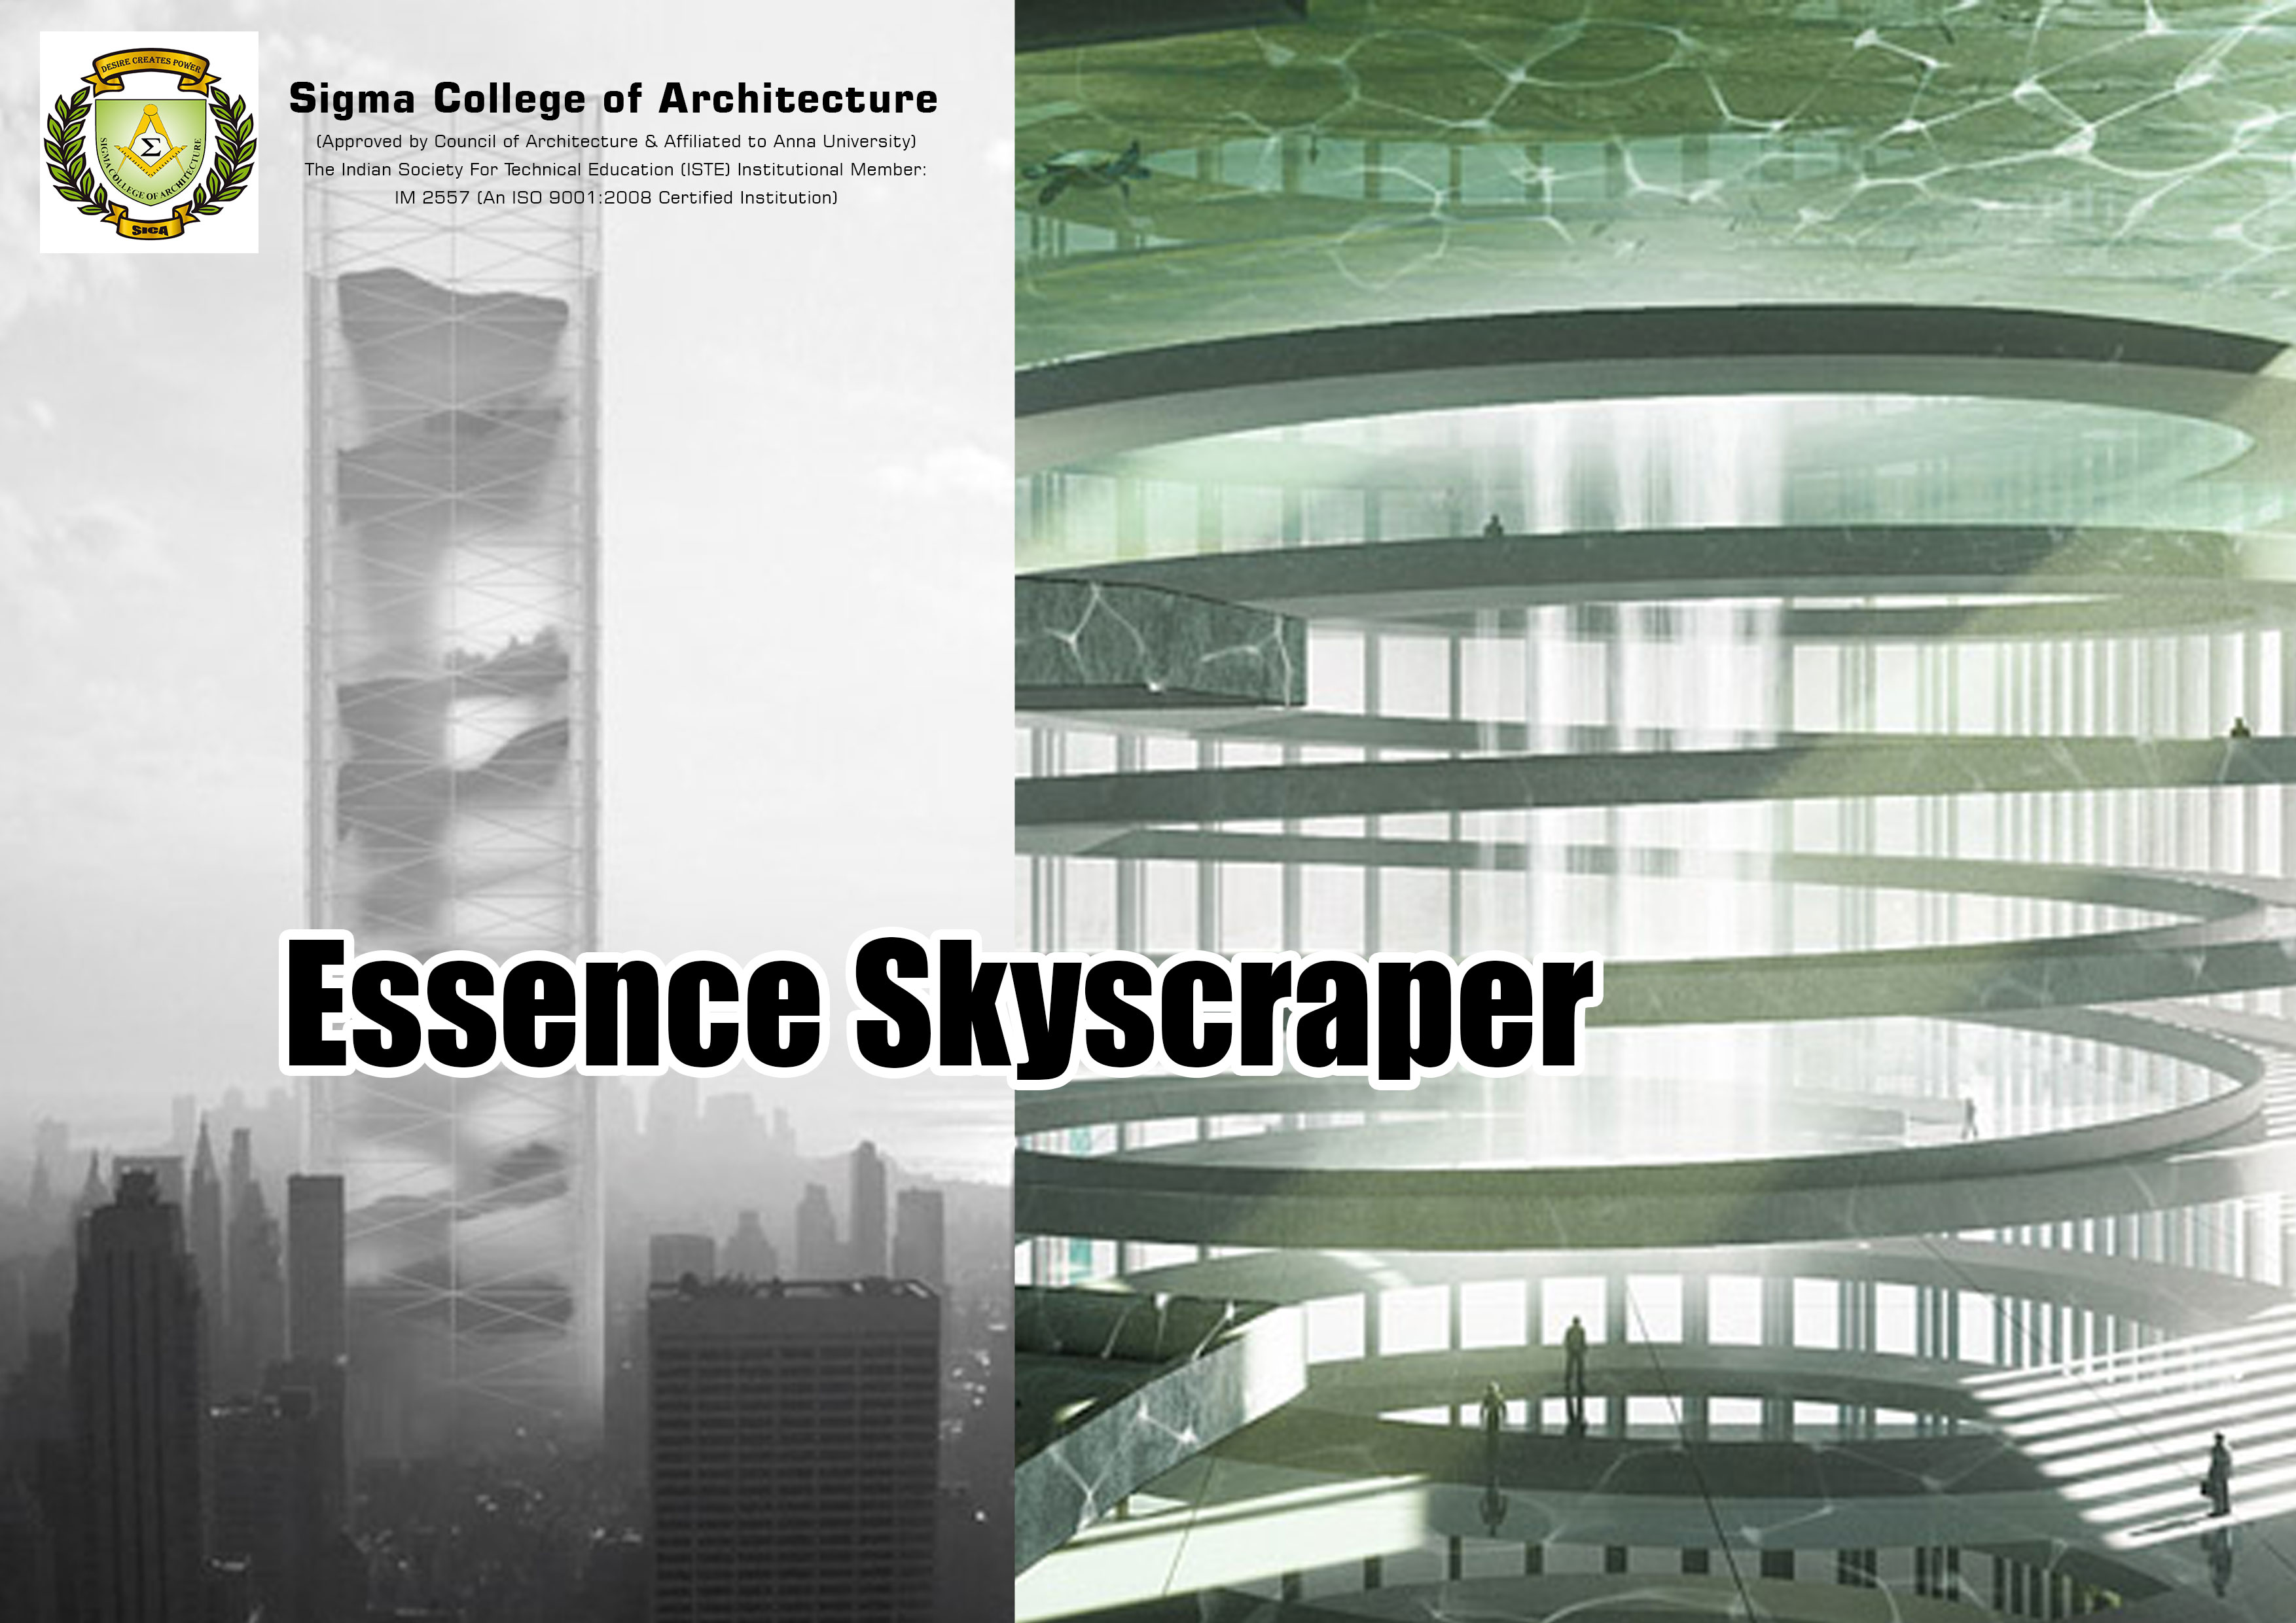 Essence Skyscraper